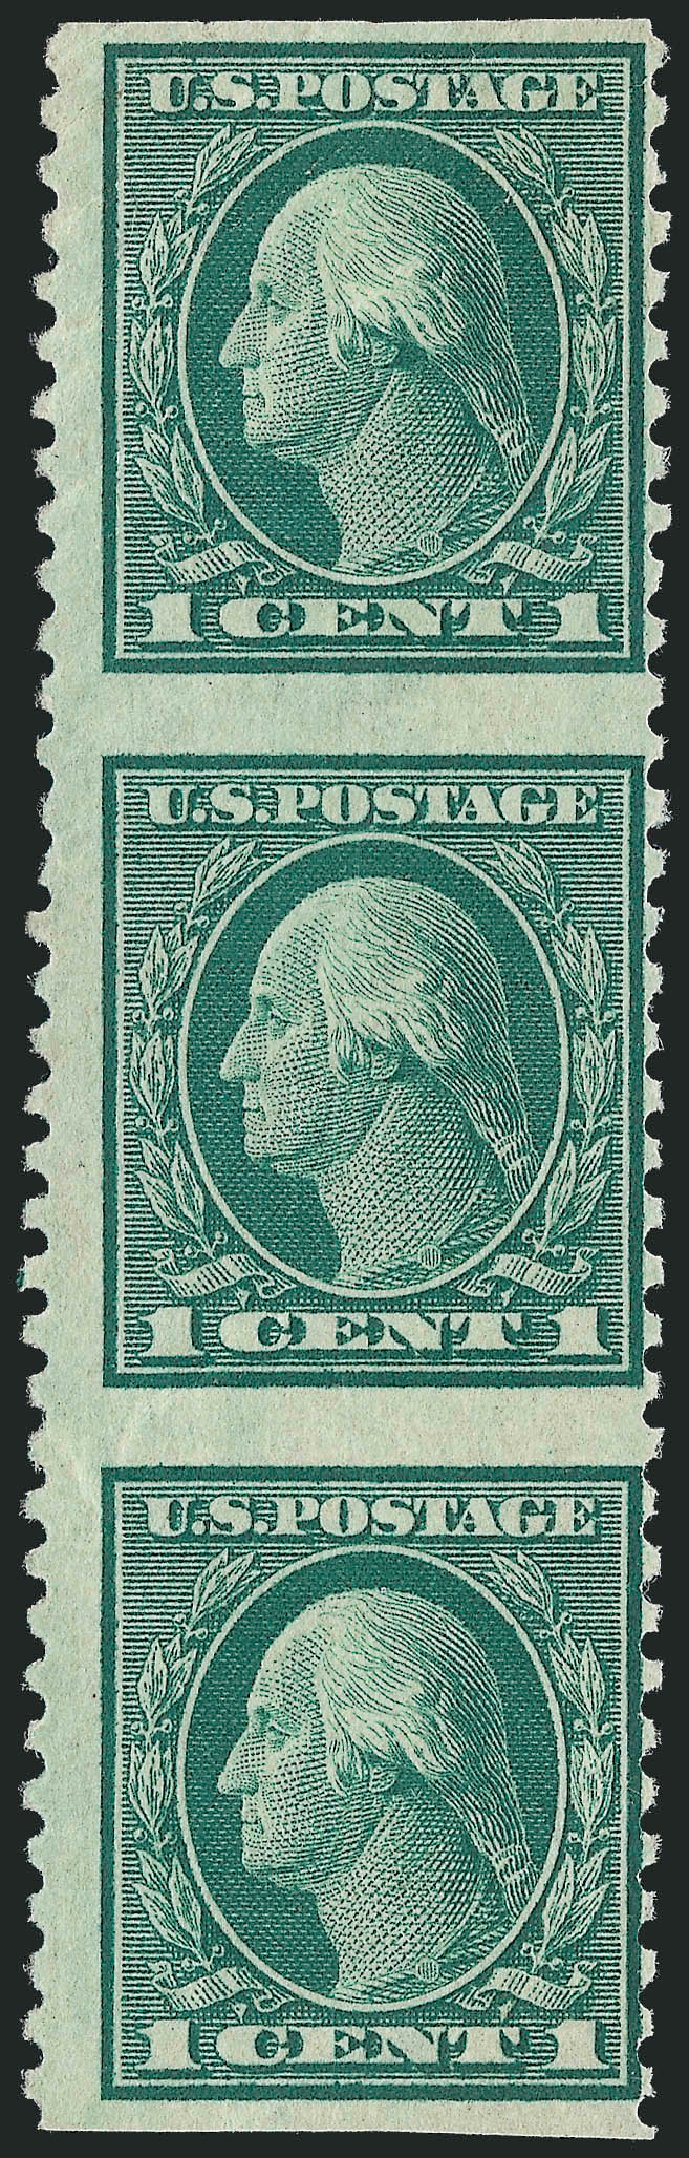 Cost of US Stamps Scott 424: 1914 1c Washington Perf 10. Robert Siegel Auction Galleries, Sep 2009, Sale 976, Lot 2011